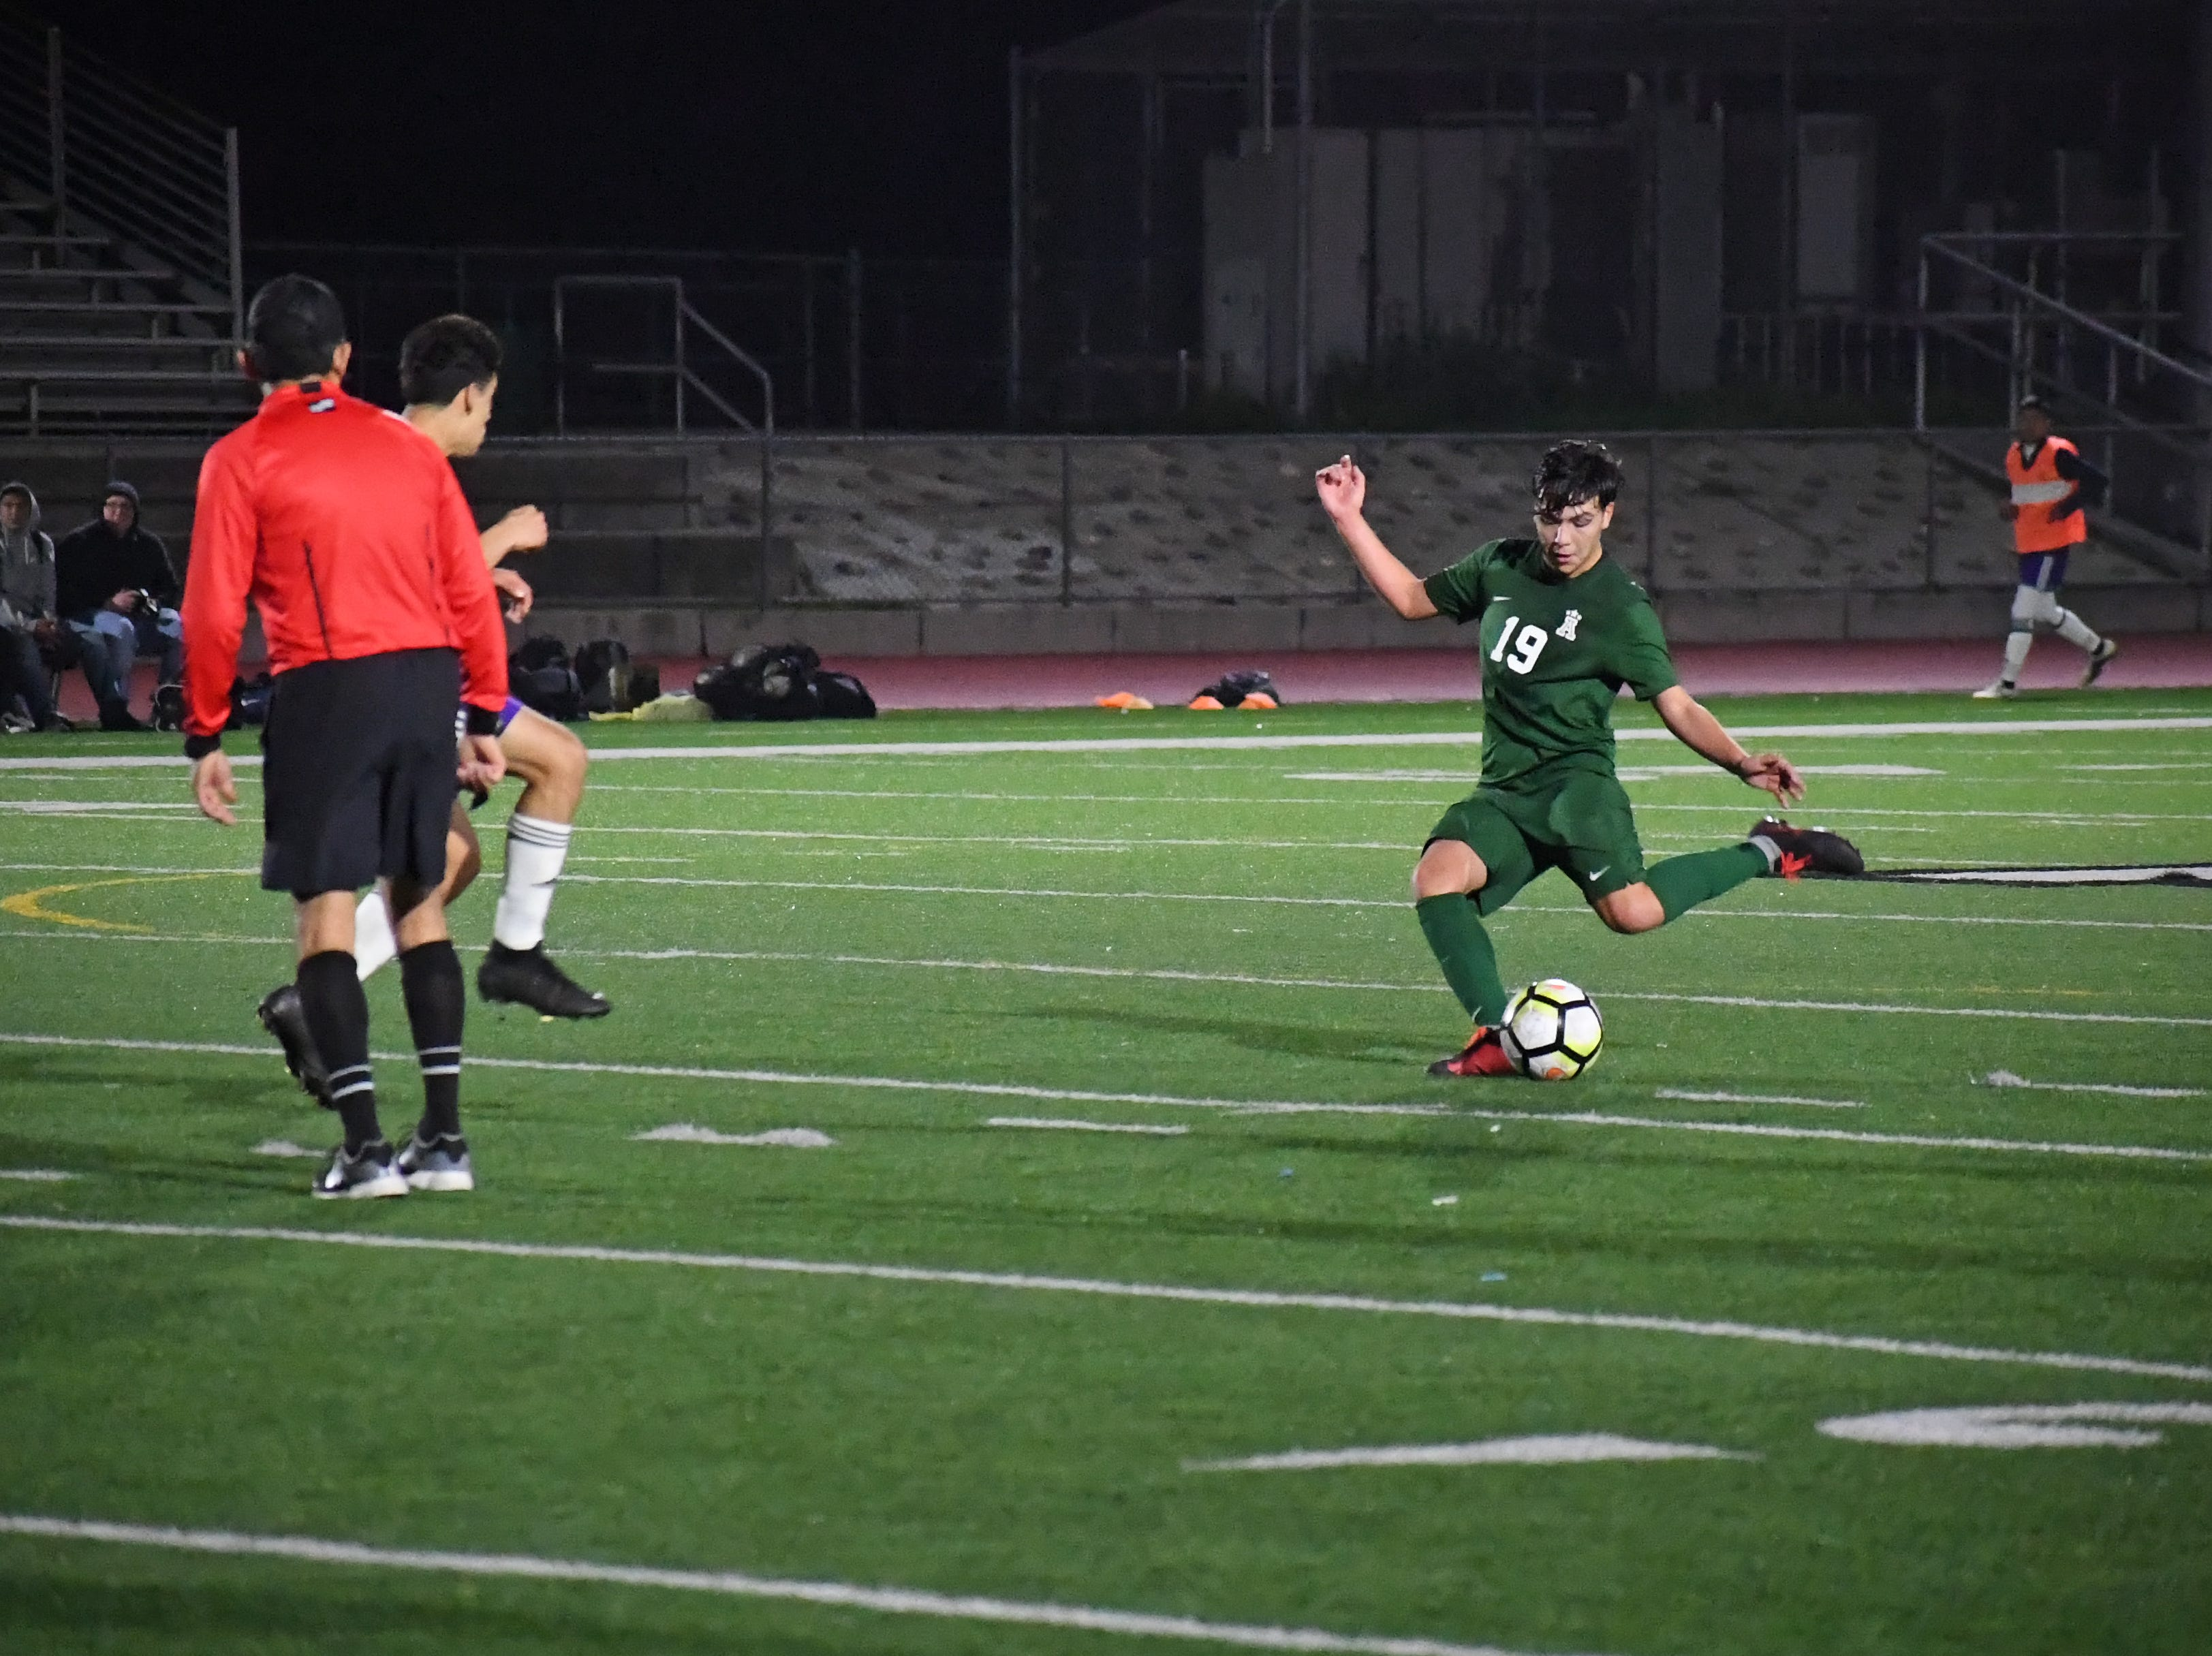 Alisal defender Jose Trujillo (19) readies to pass around a defender.